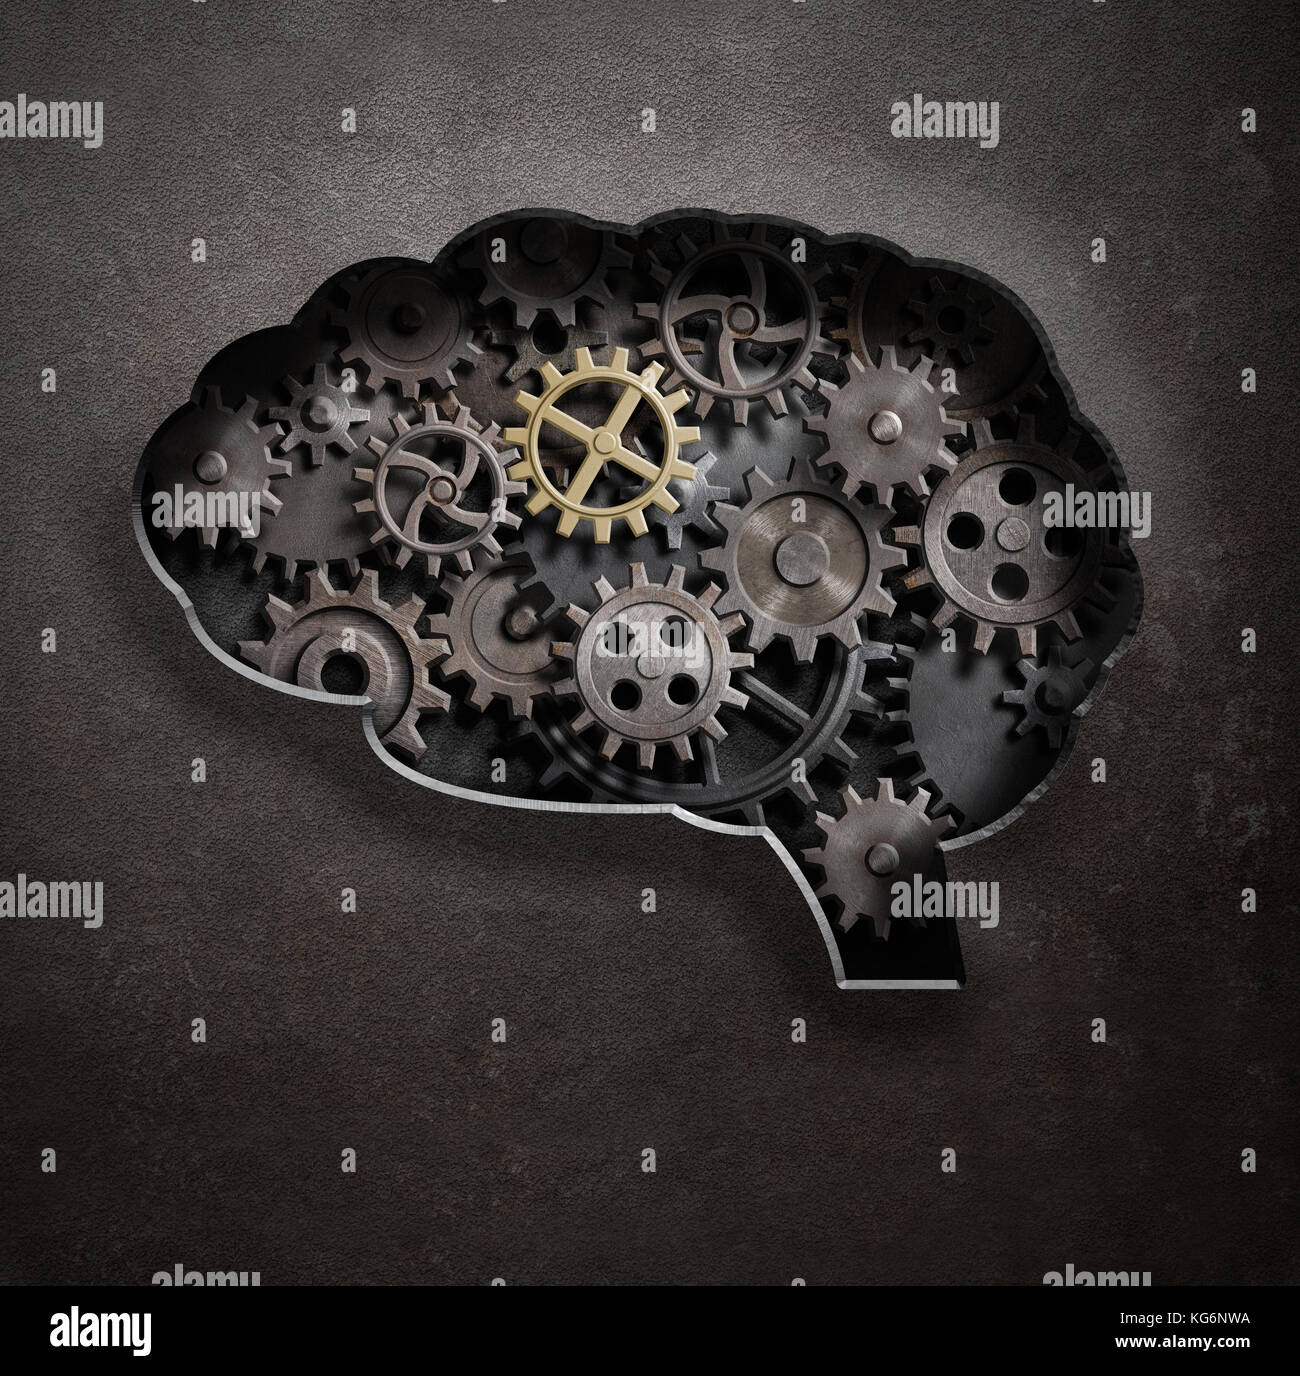 Brain gears and cogs concept 3d illustration - Stock Image